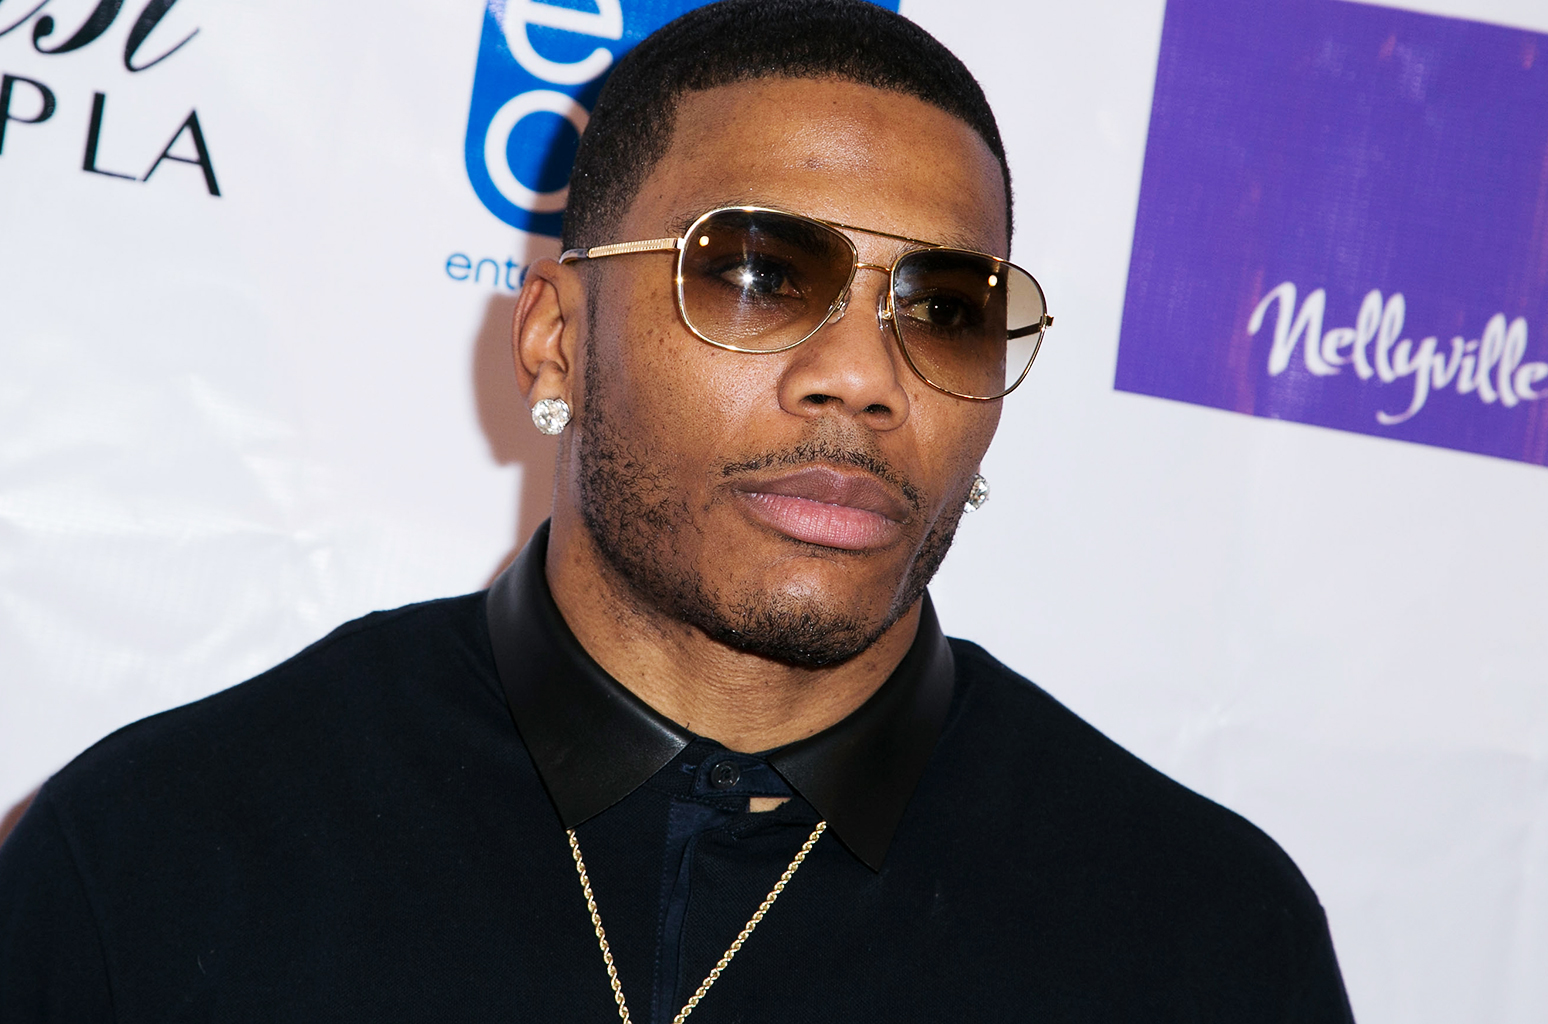 Nelly's rape accuser 'to sue for defamation and sexual assault'